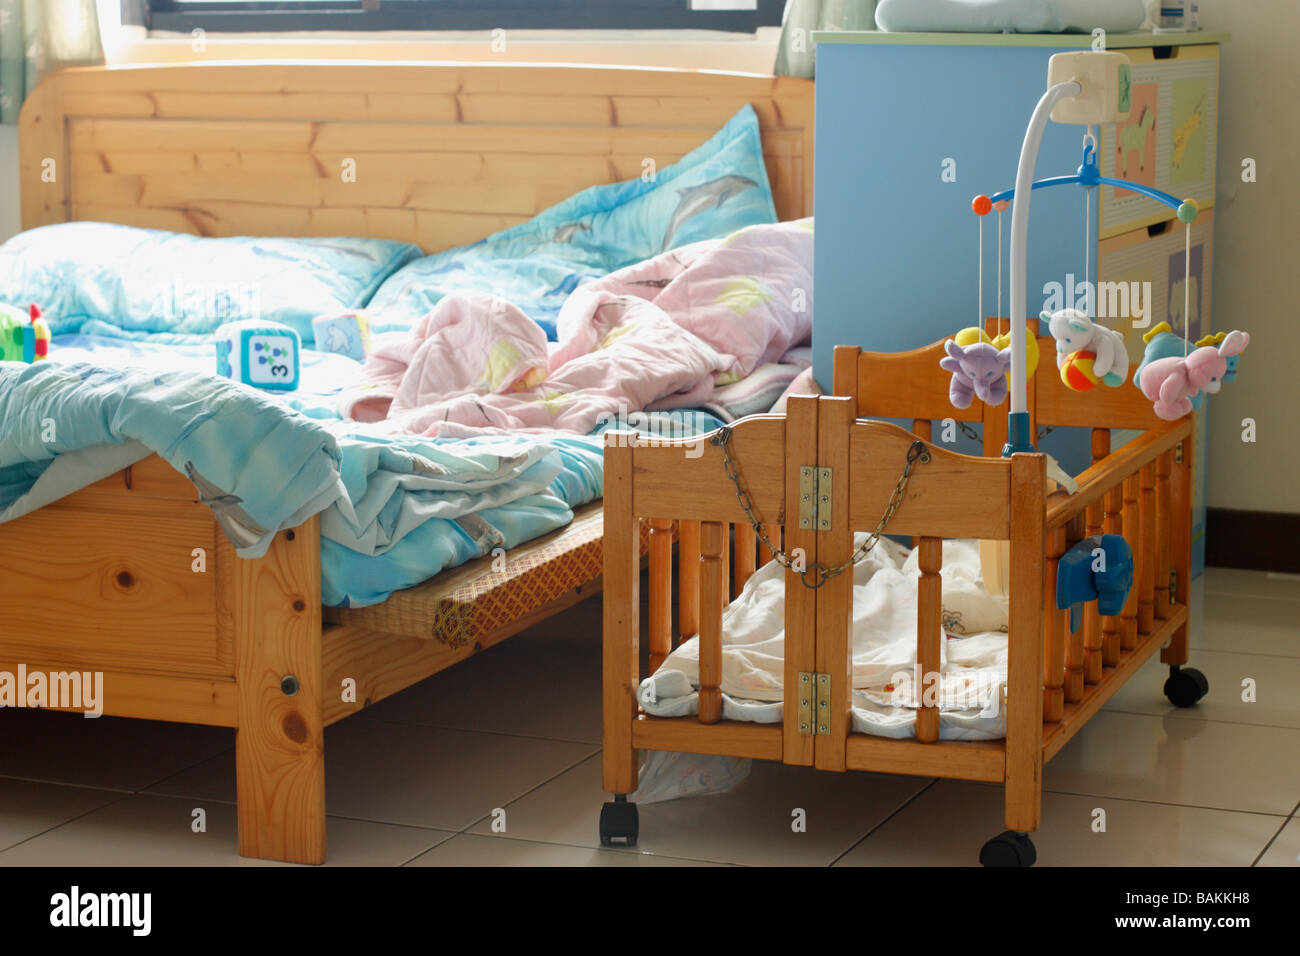 Baby Cradle Next Parents Bed High Resolution Stock Photography And Images Alamy